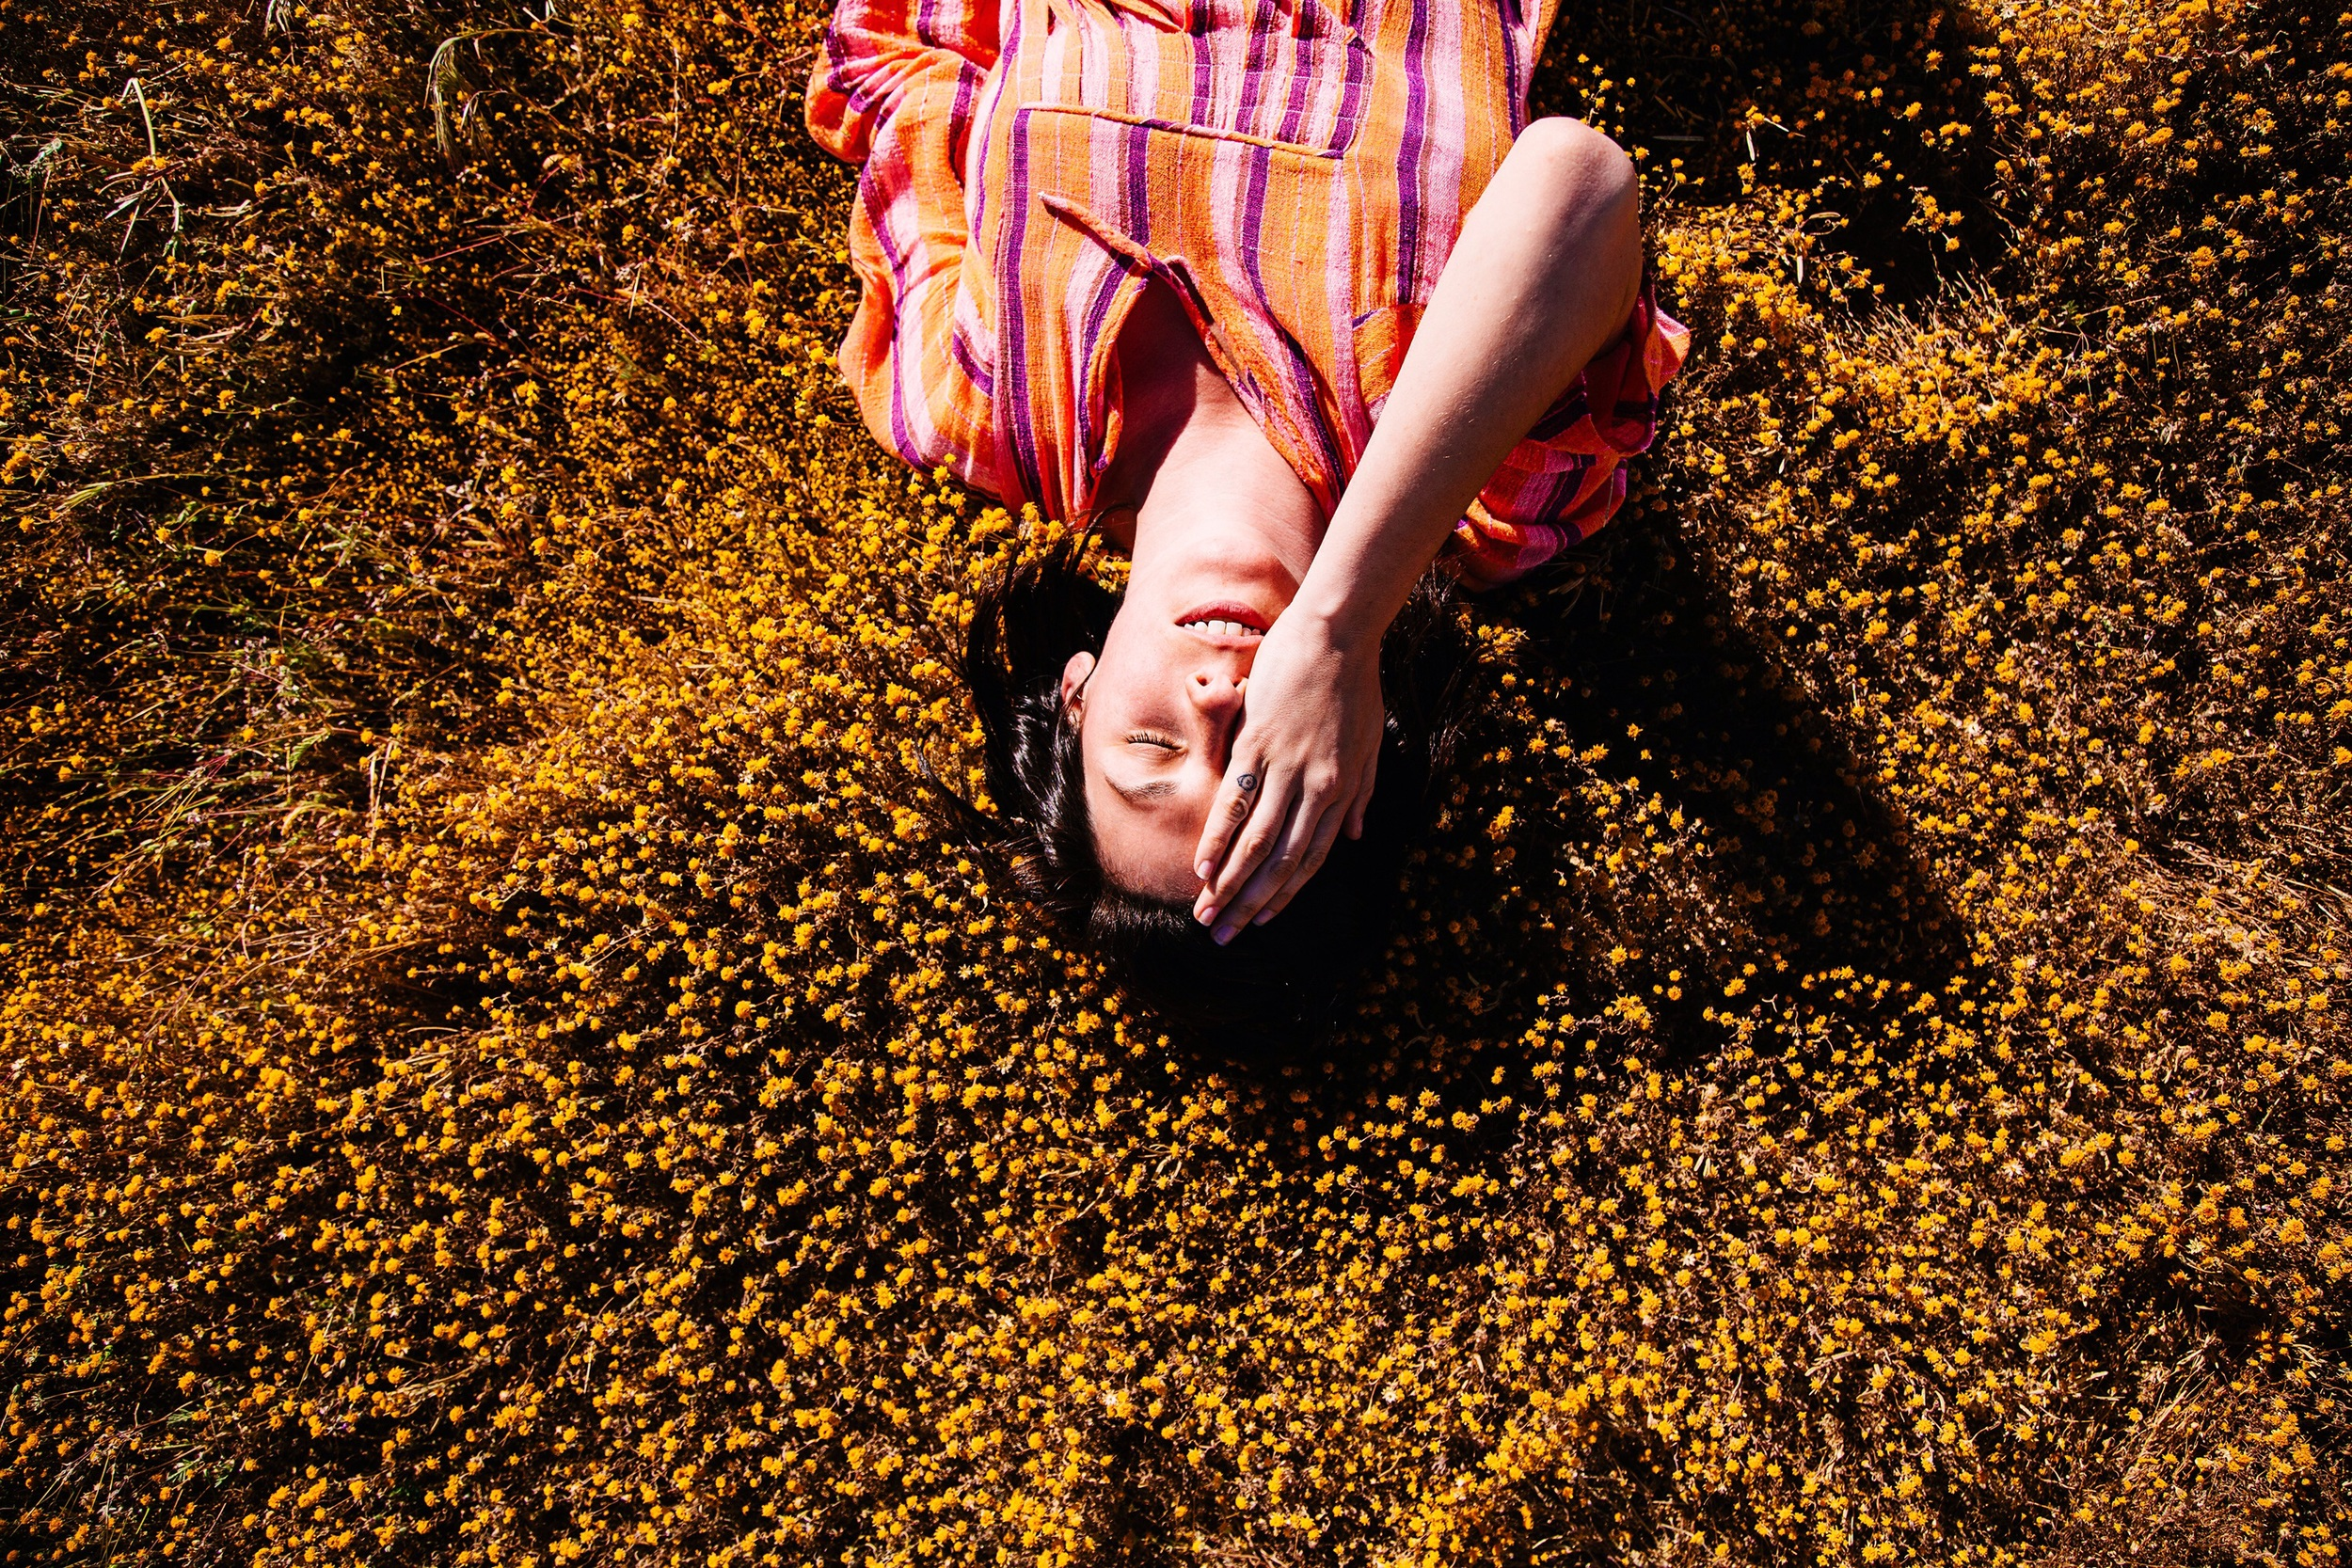 Amber in a field of yellow